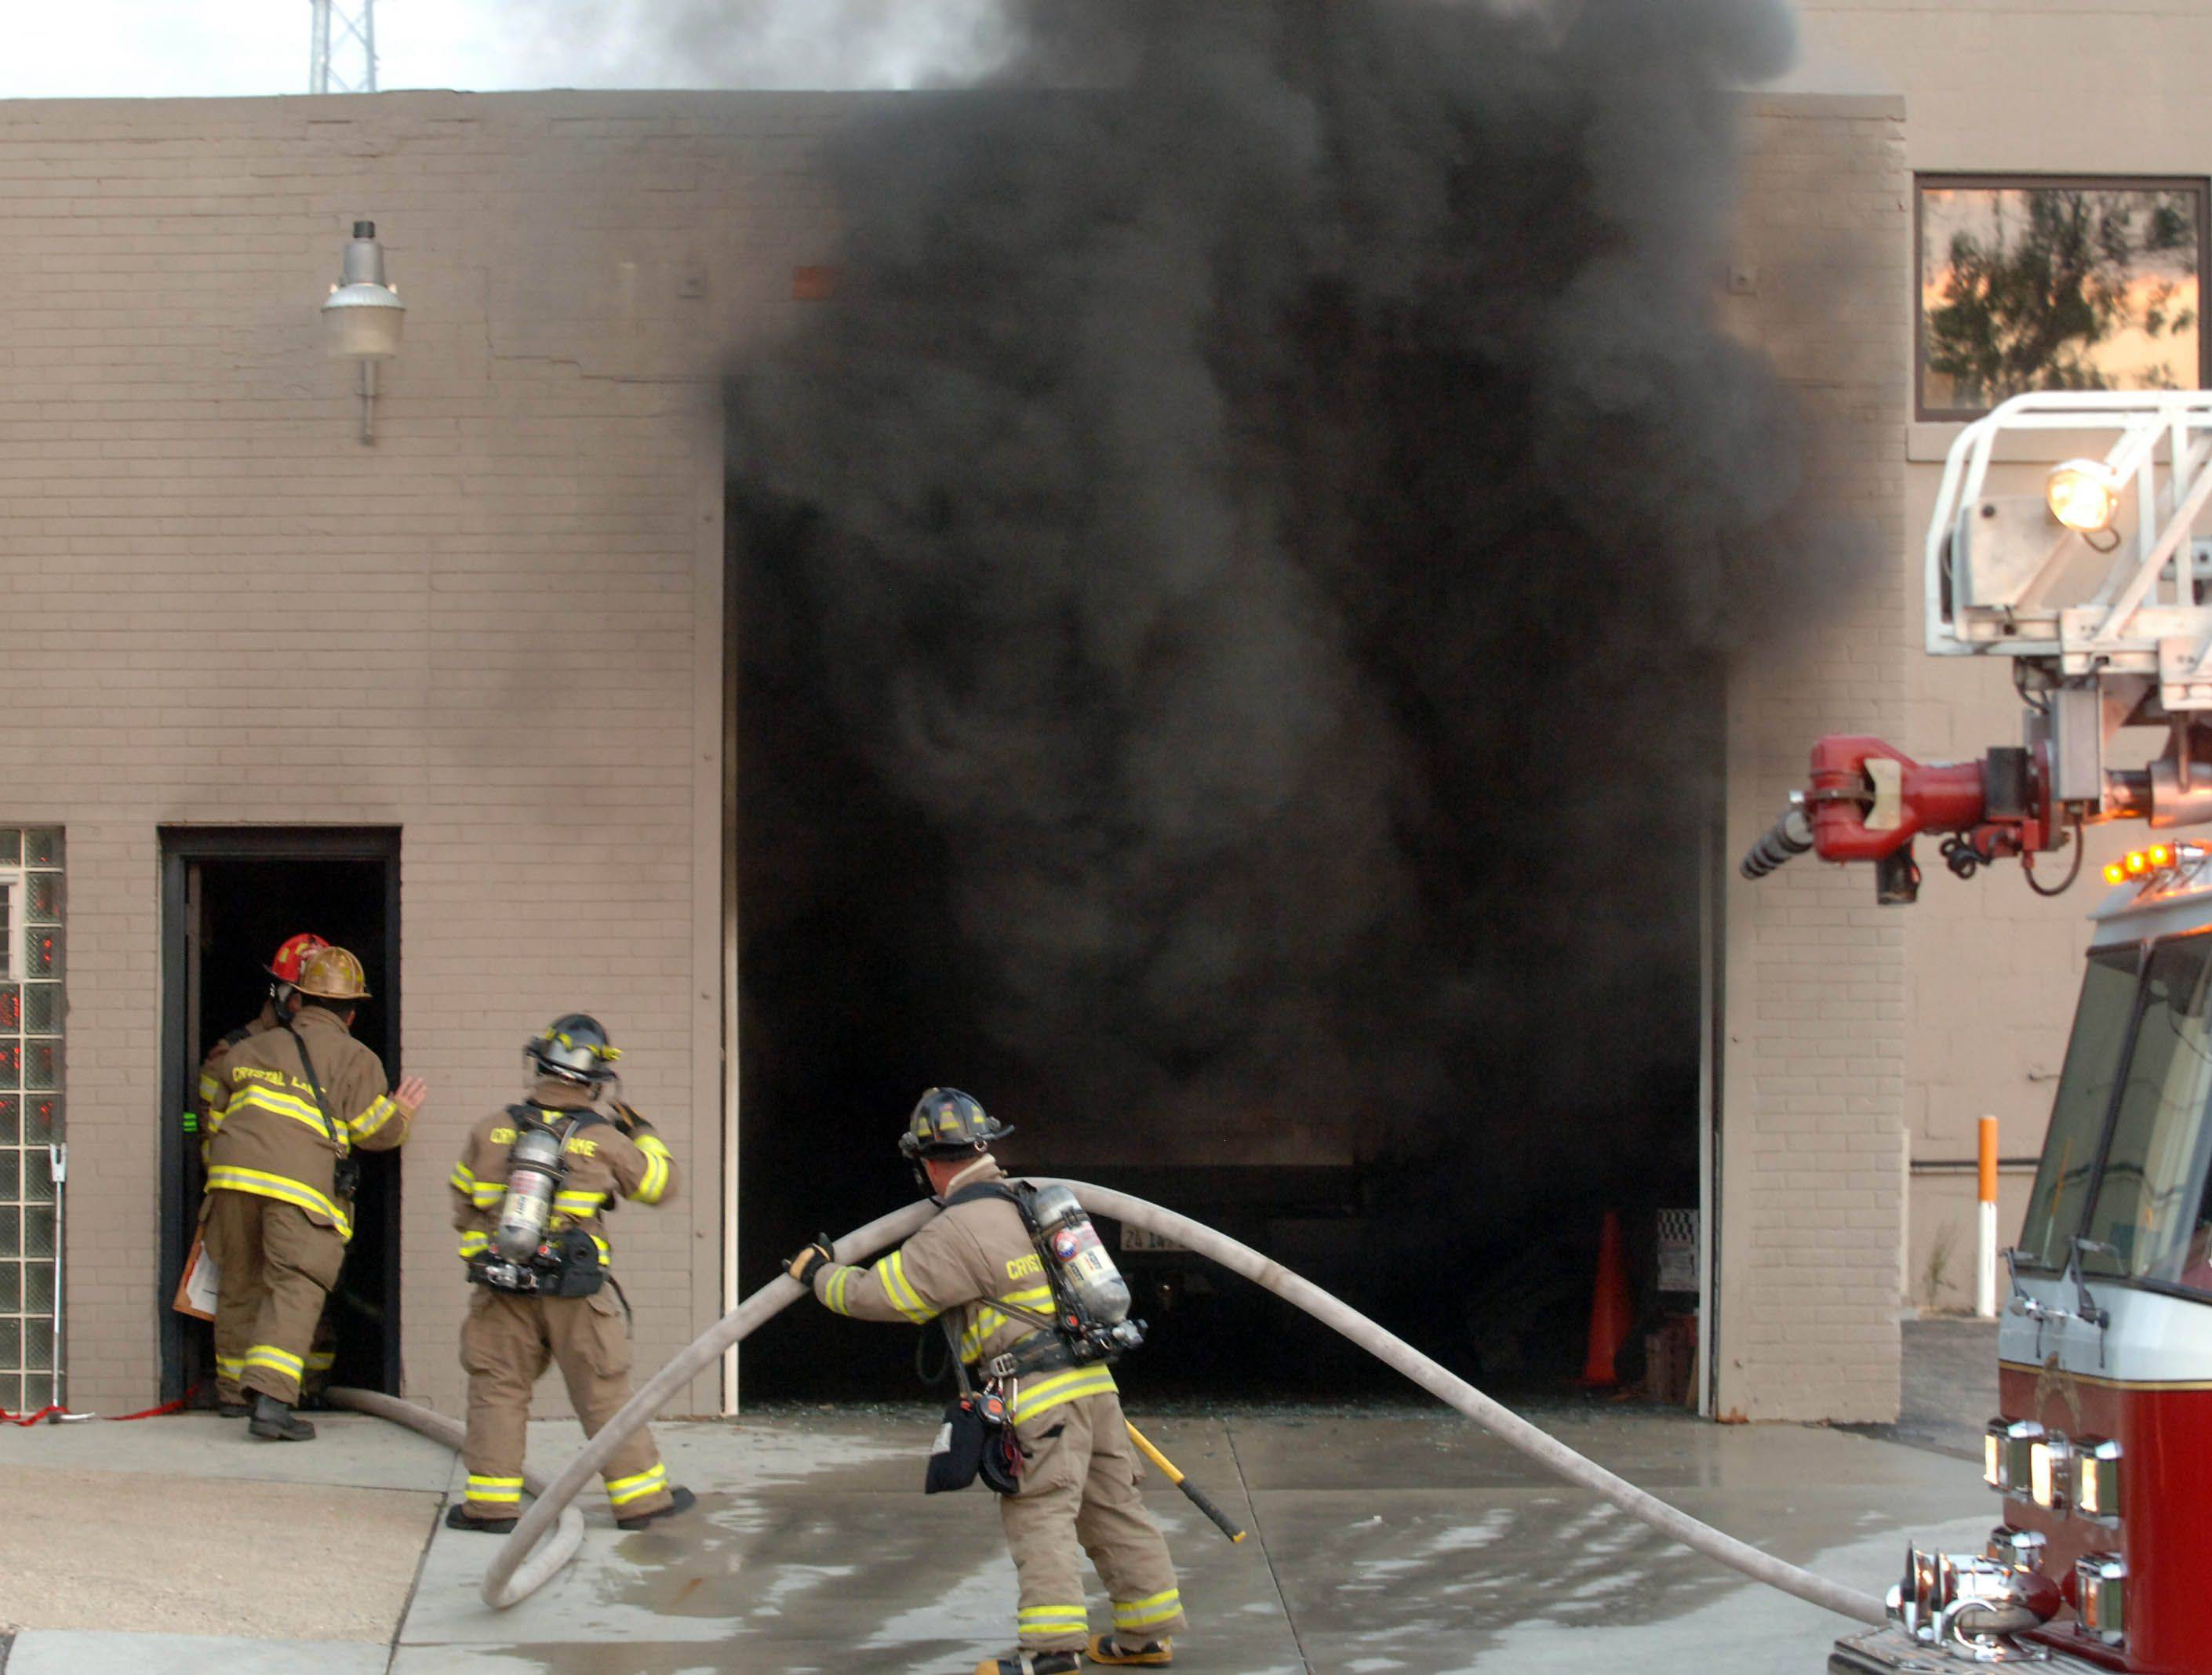 A blaze that Crystal Lake firefighters extinguished on Friday night at a downtown auto body shop started in a car inside the building, officials said Saturday.